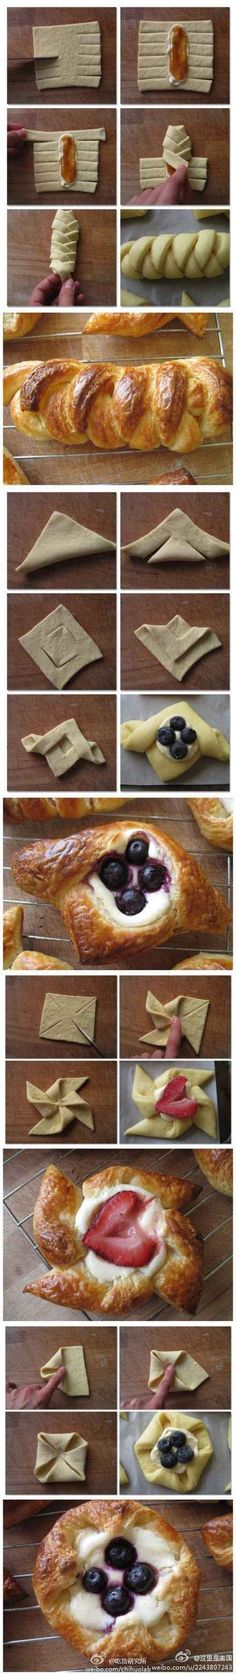 Pastry Folding Examples